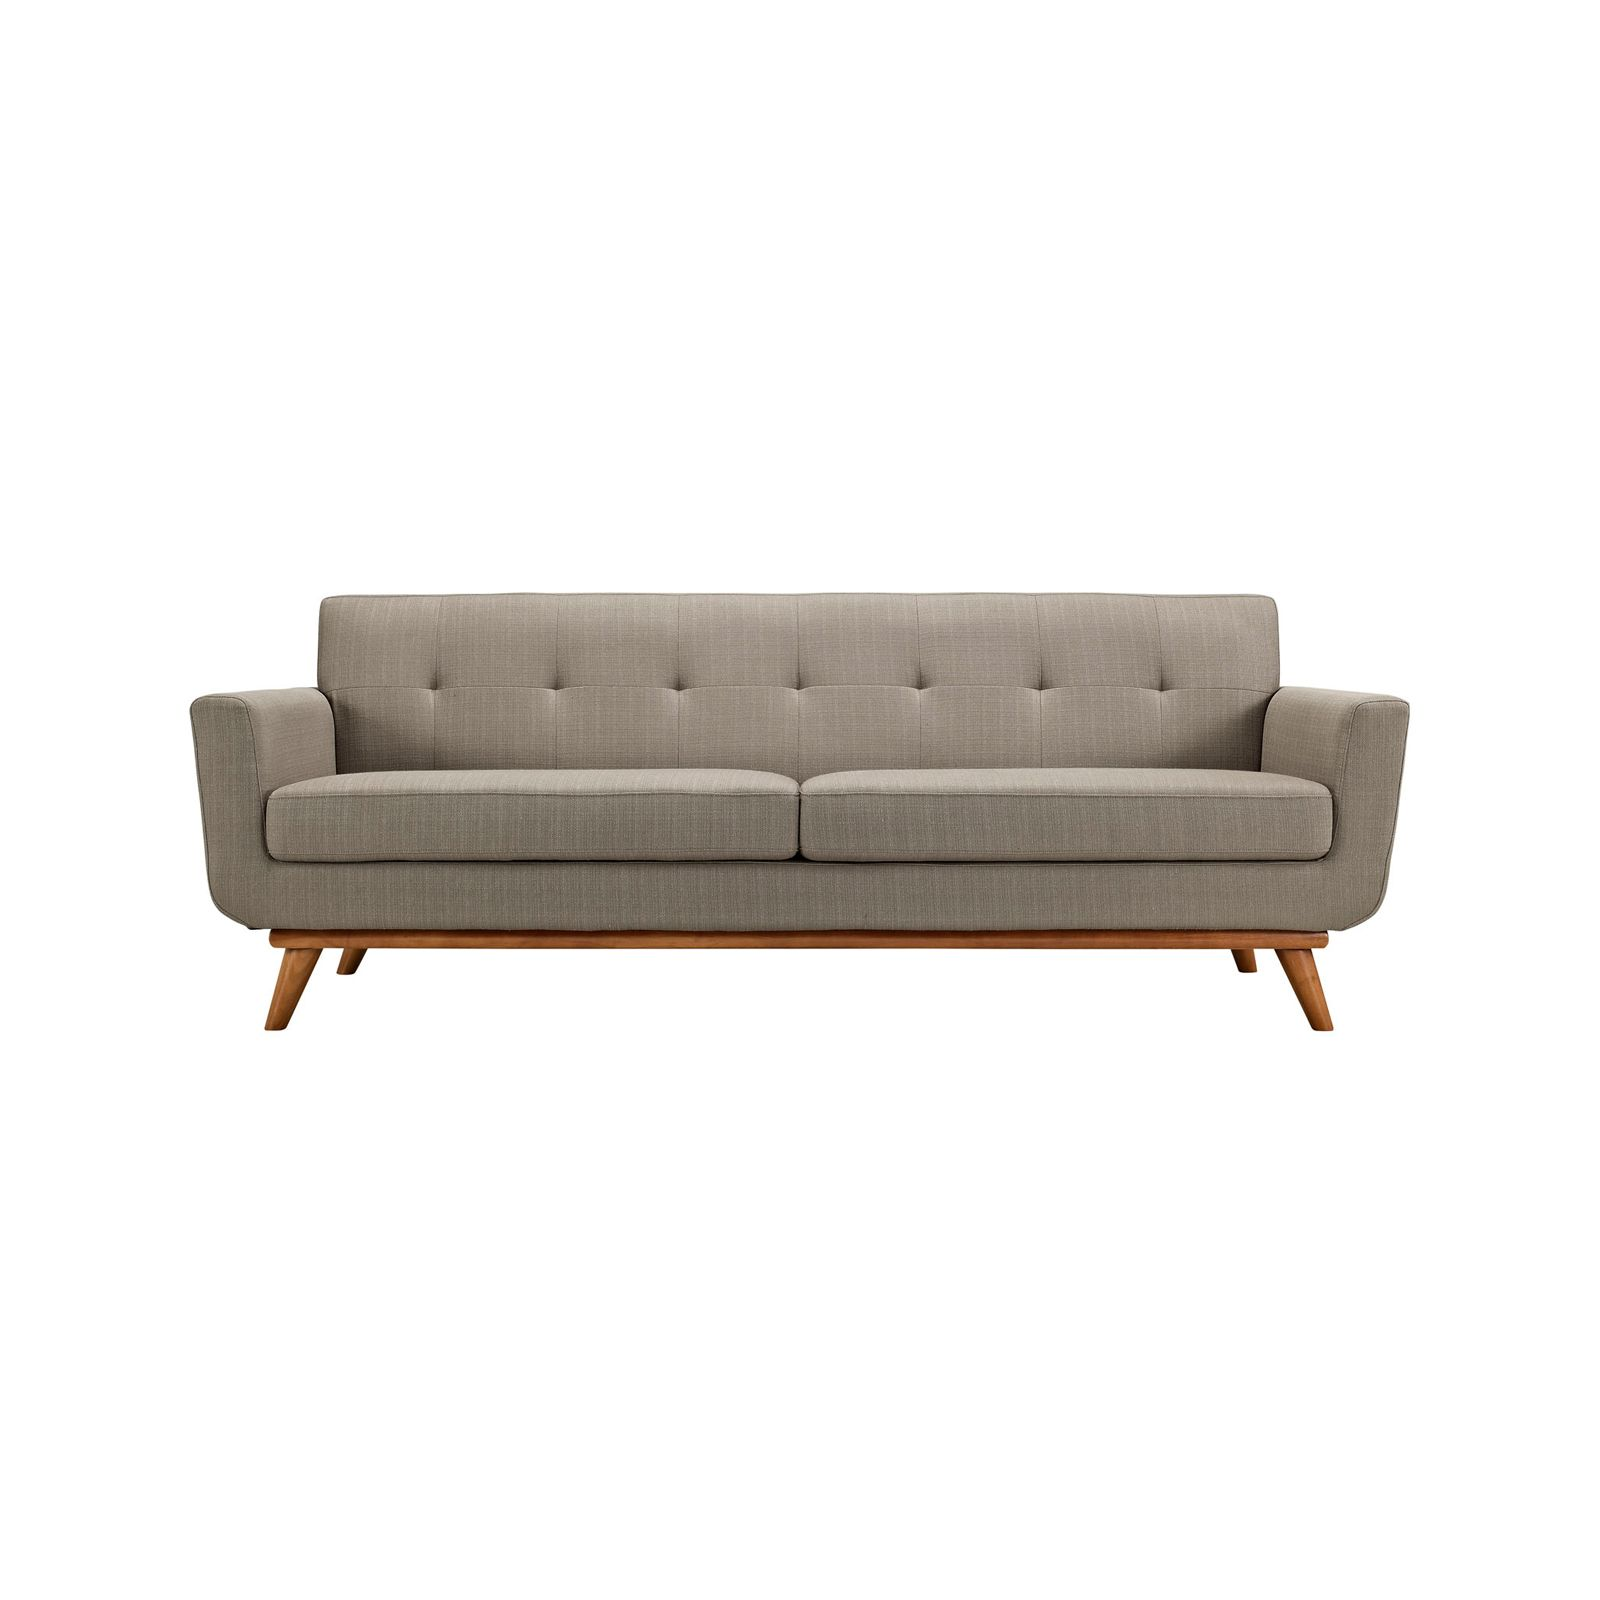 Dot & Bo Furniture And D Cor For The Modern